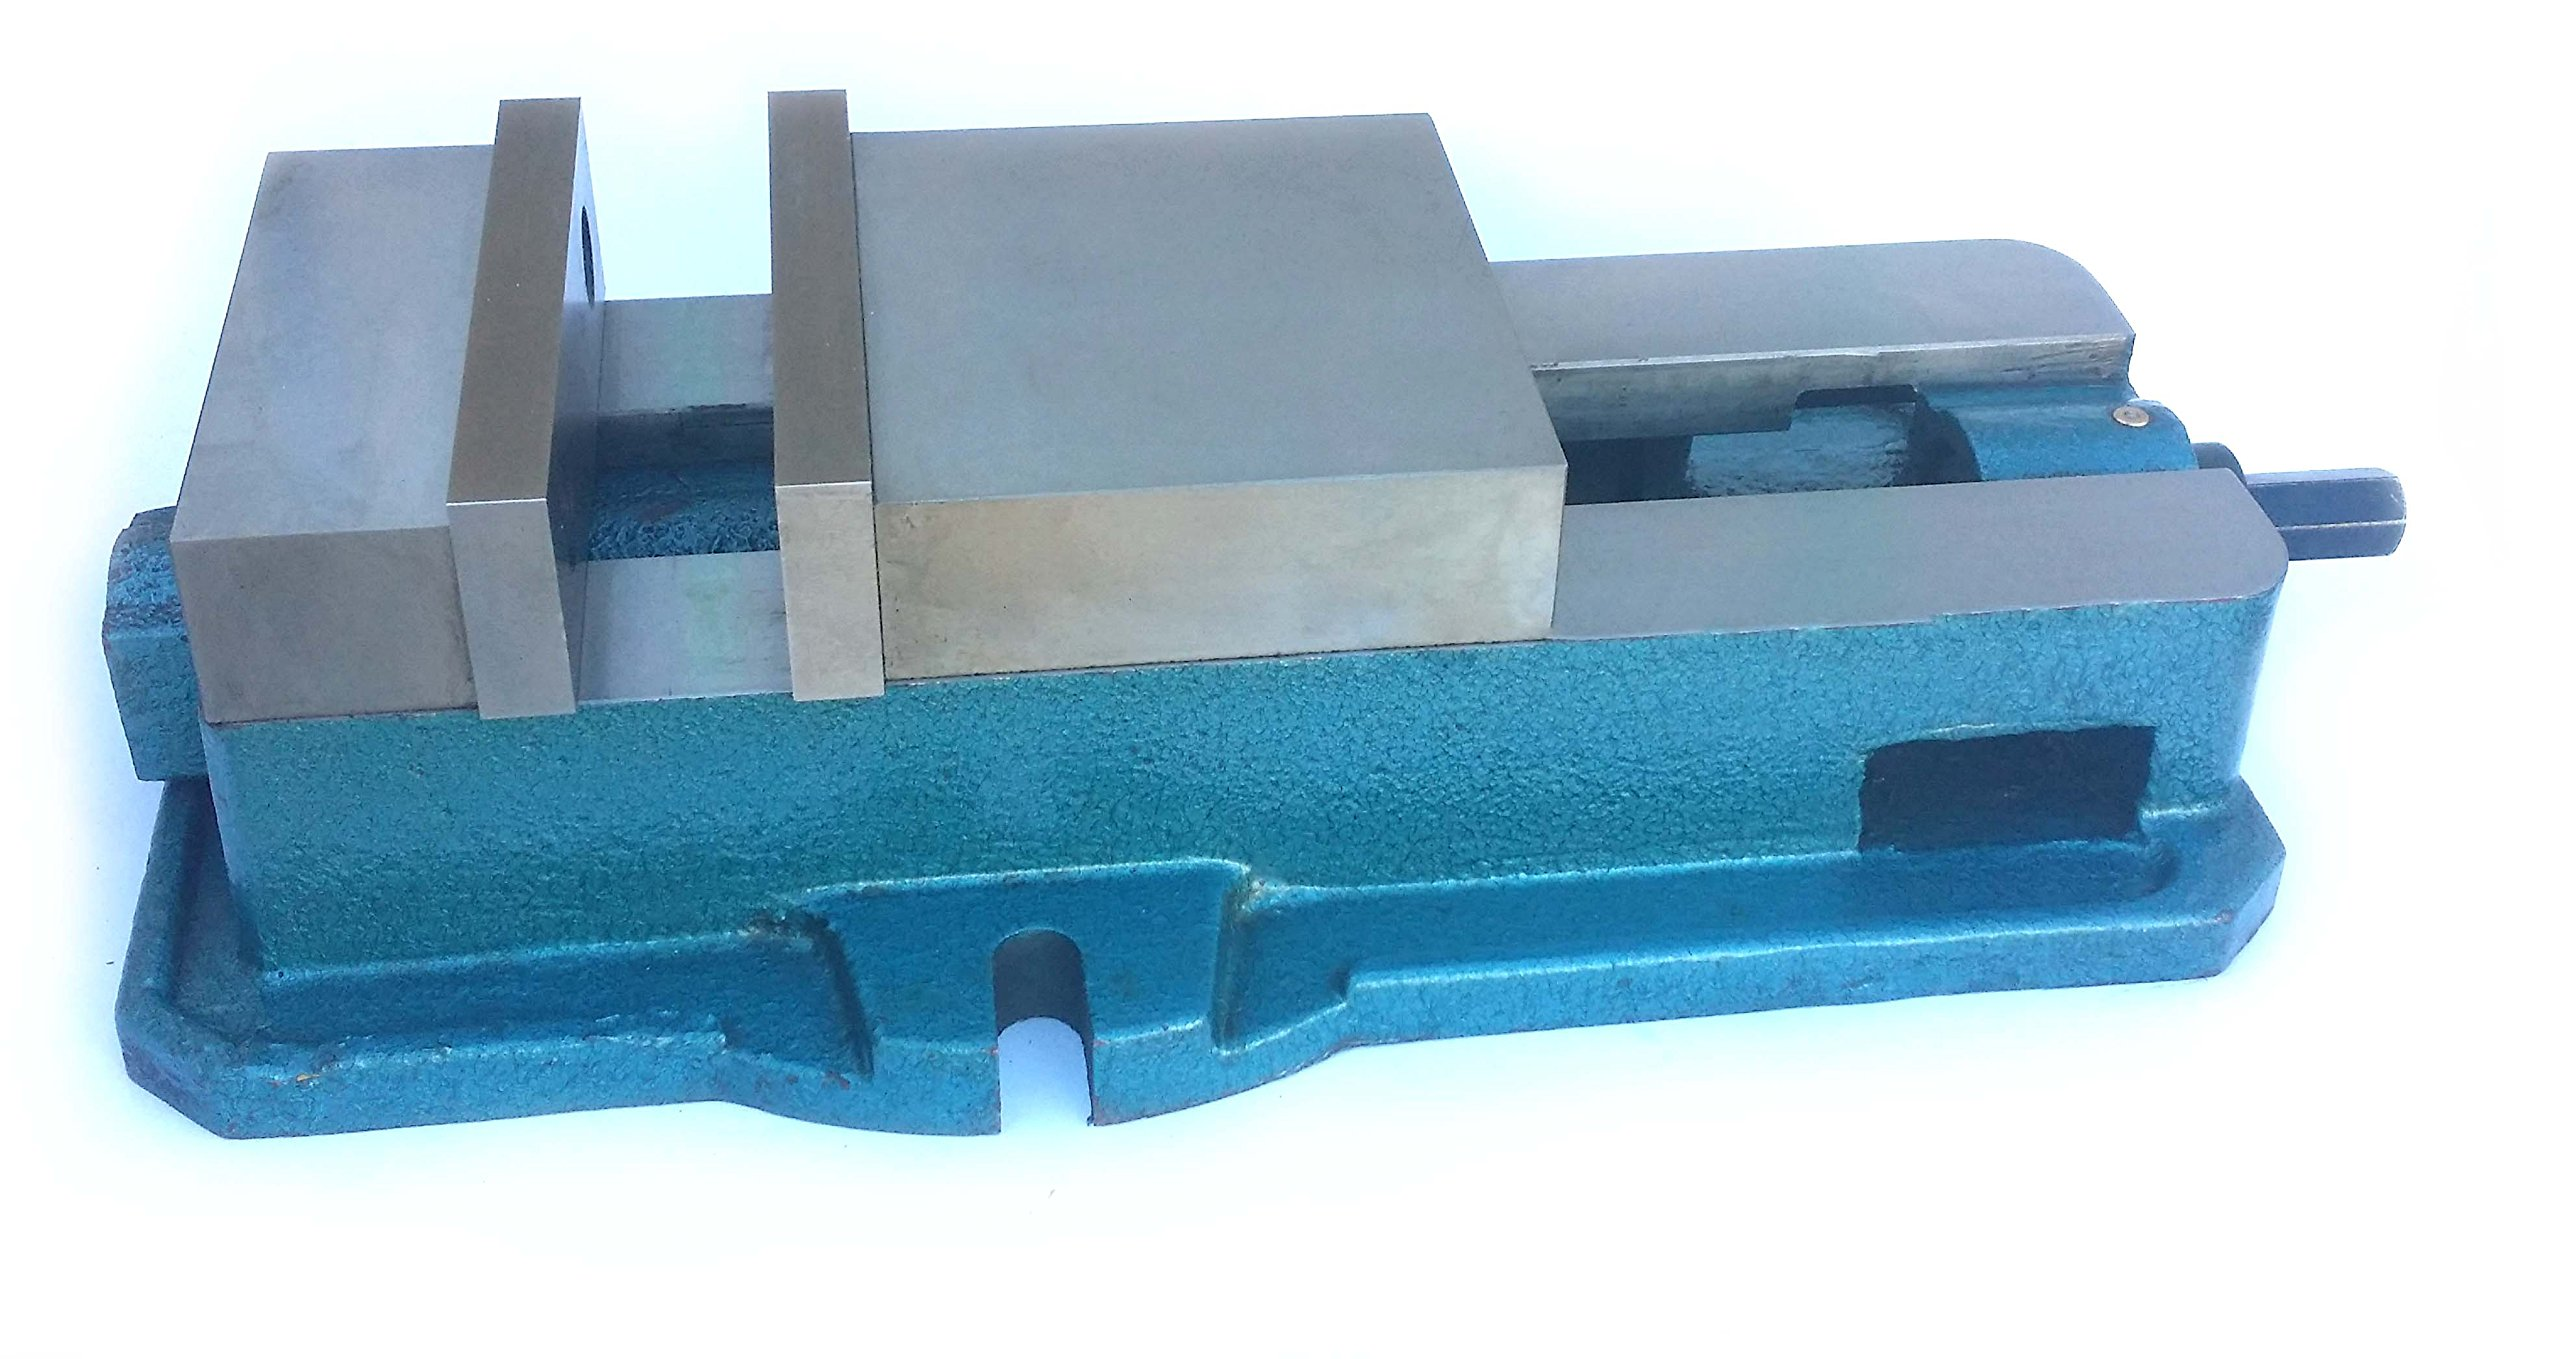 HHIP 3900-2206 Ultra Series Angle Tight, Positive Lock Milling Vise without Swivel Base, 6'' Width x 1.95'' Depth Jaw, 7.5'' Jaw Opening (Pack of 1)